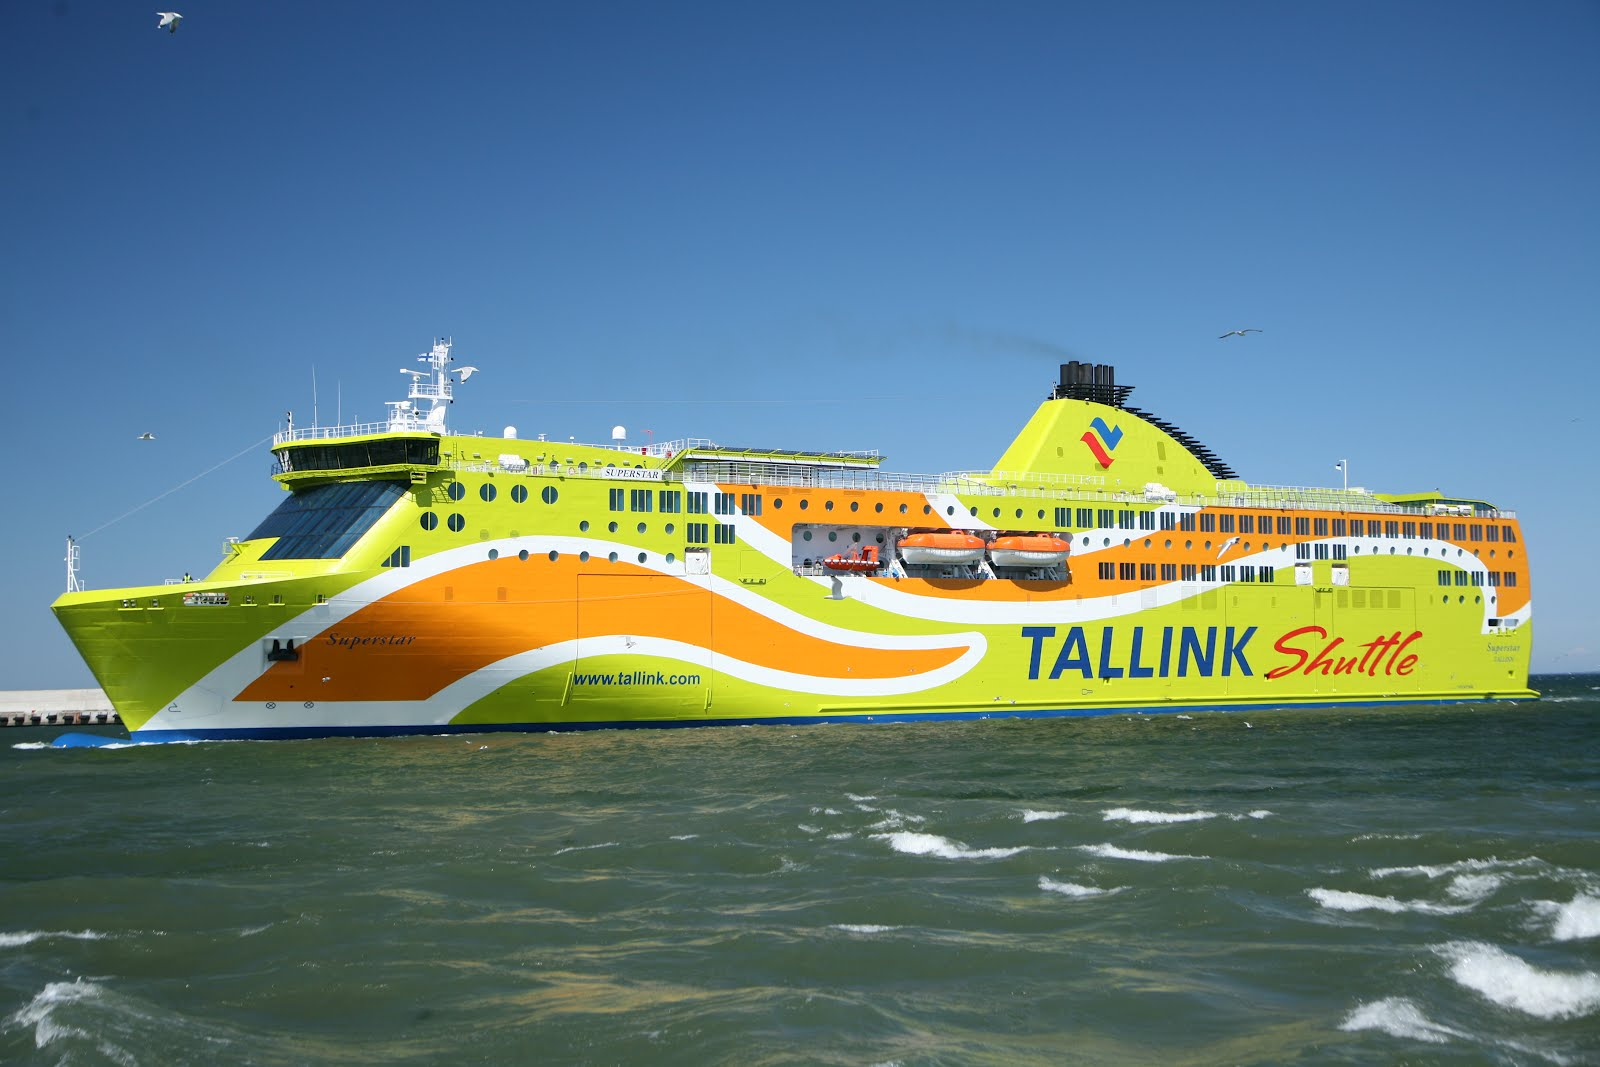 Tallink Superstar in bay Of Finland